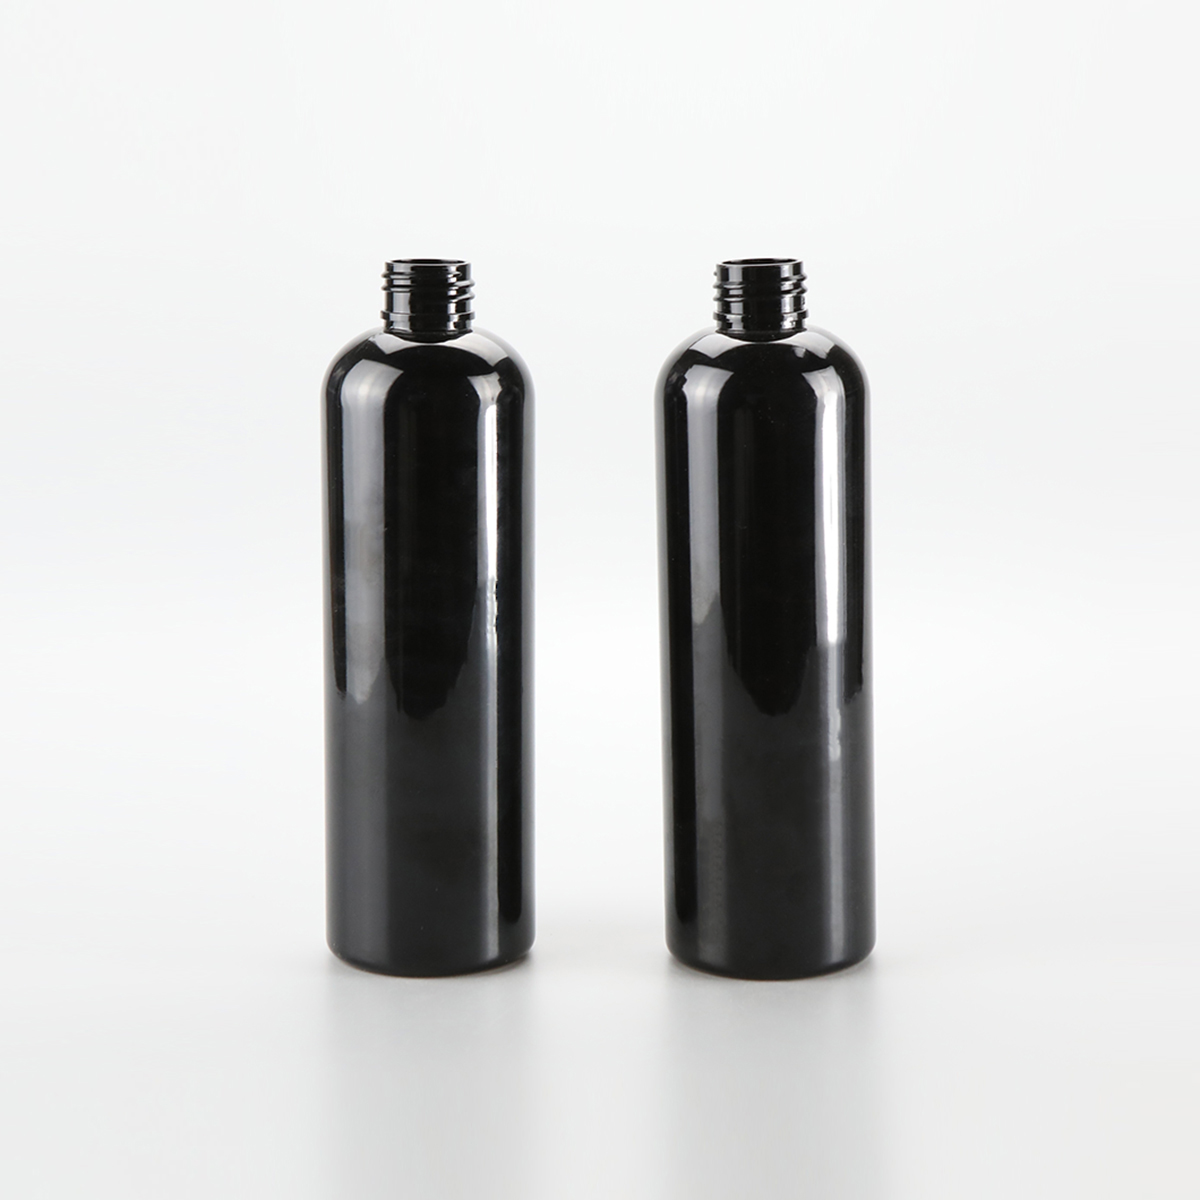 60ml 120ml 250ml 450ml Black cosmetic cosmo round plastic packaging bottle